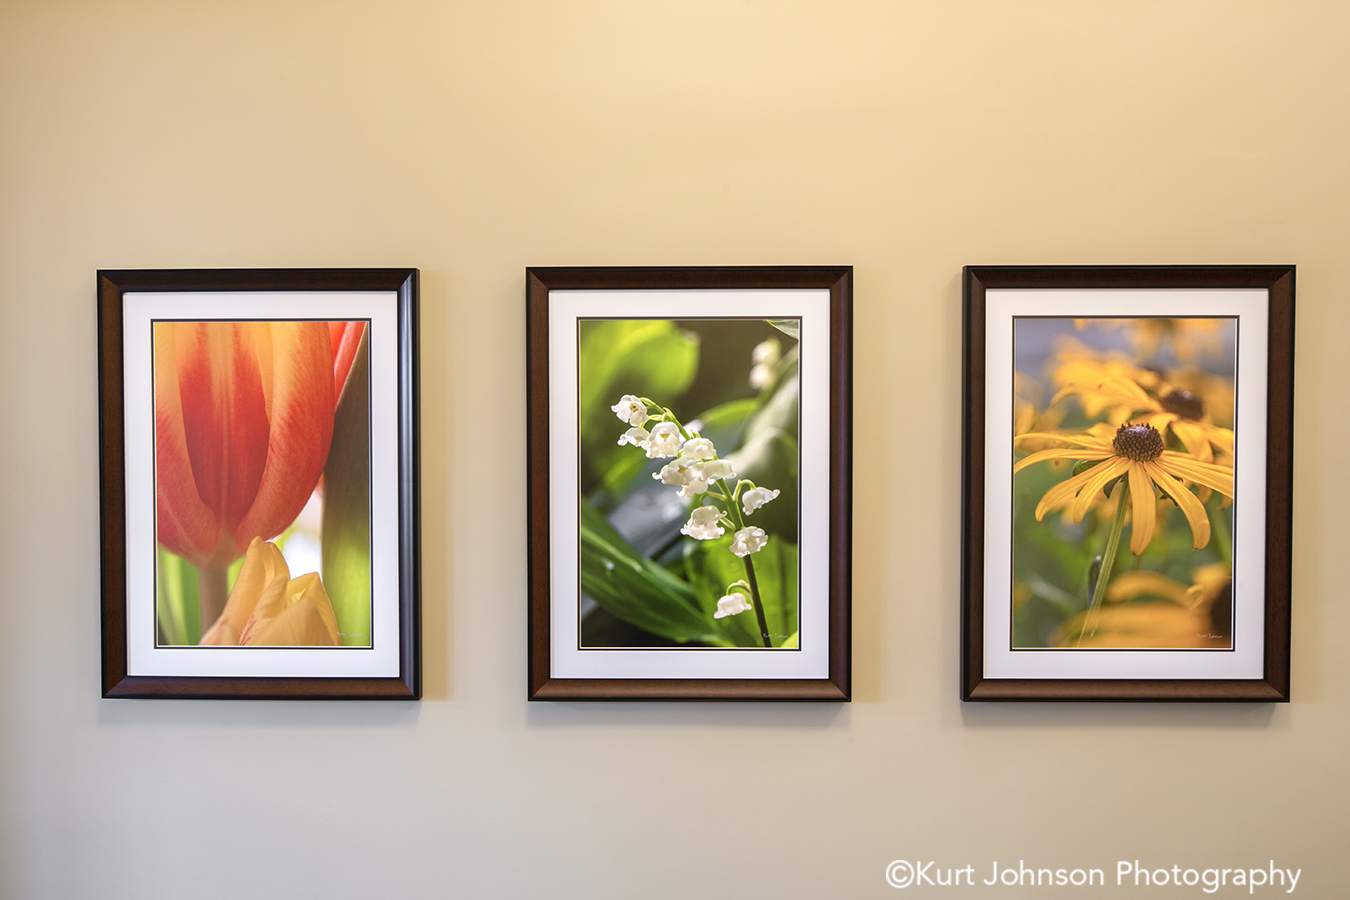 Pender hospital healthcare installation wood framed art flower botanical photography